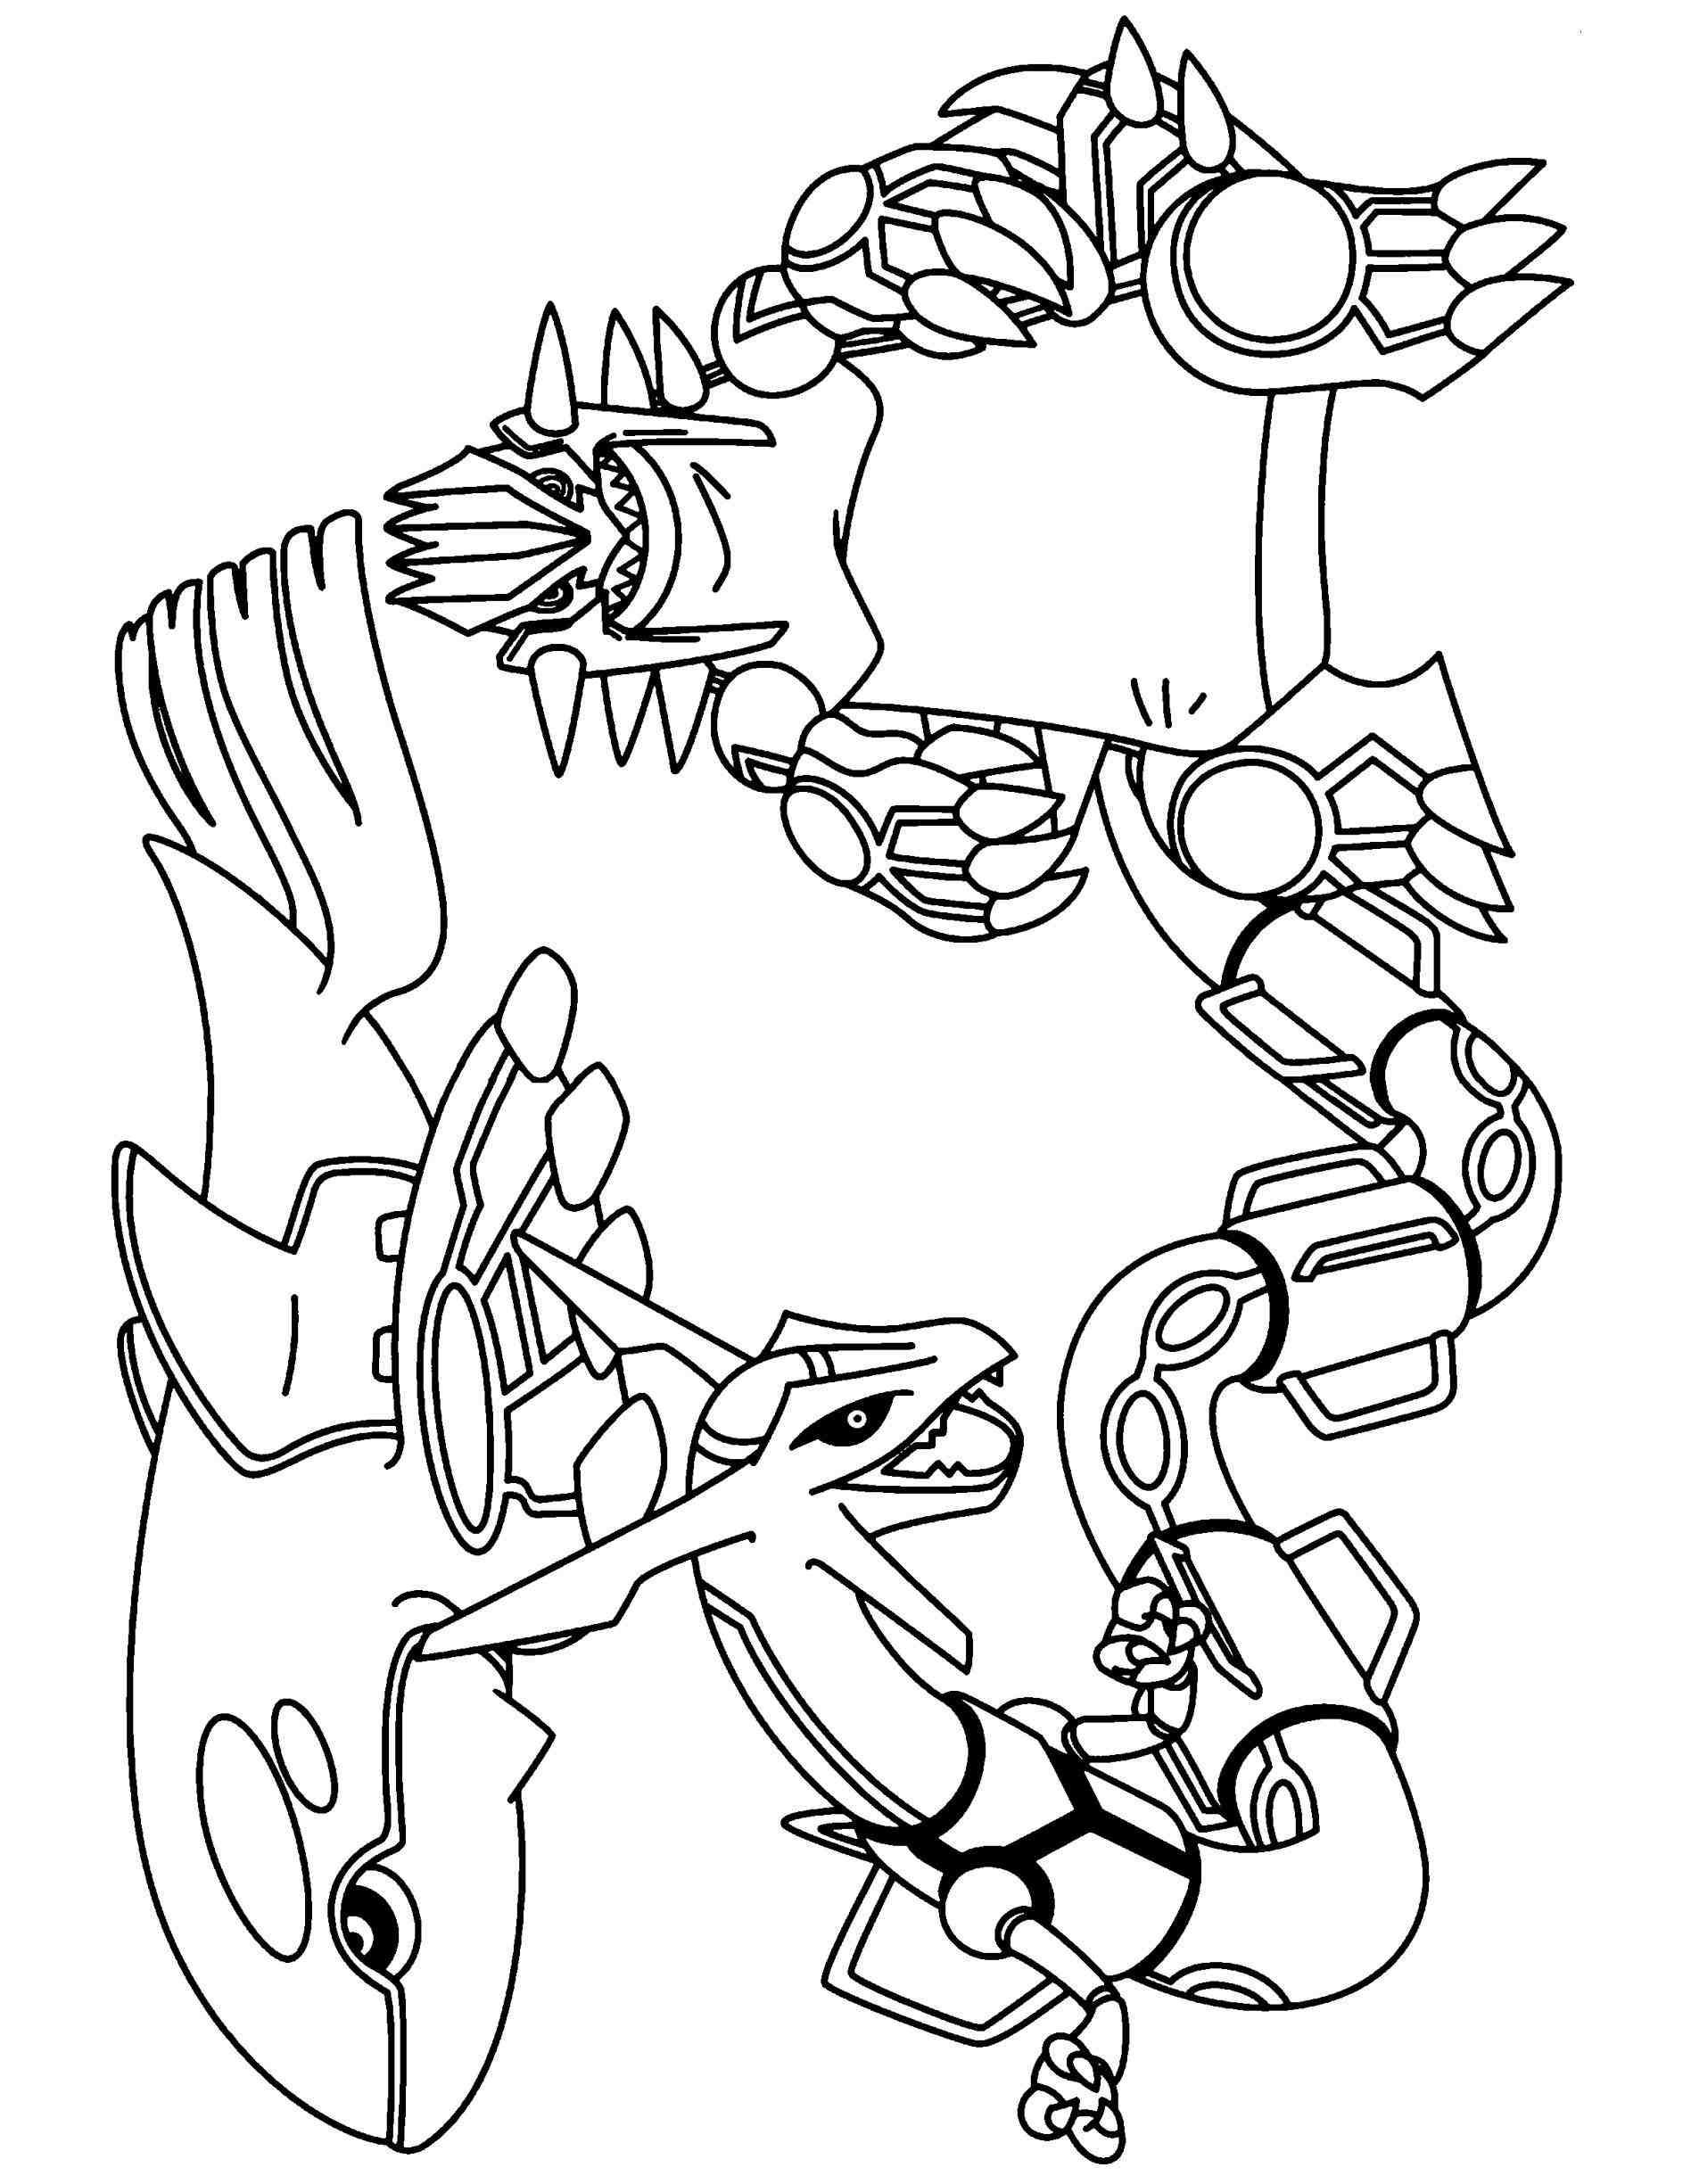 coloring pages pokemon legendary pokemon lunala coloring pages divyajananiorg pokemon legendary pages coloring